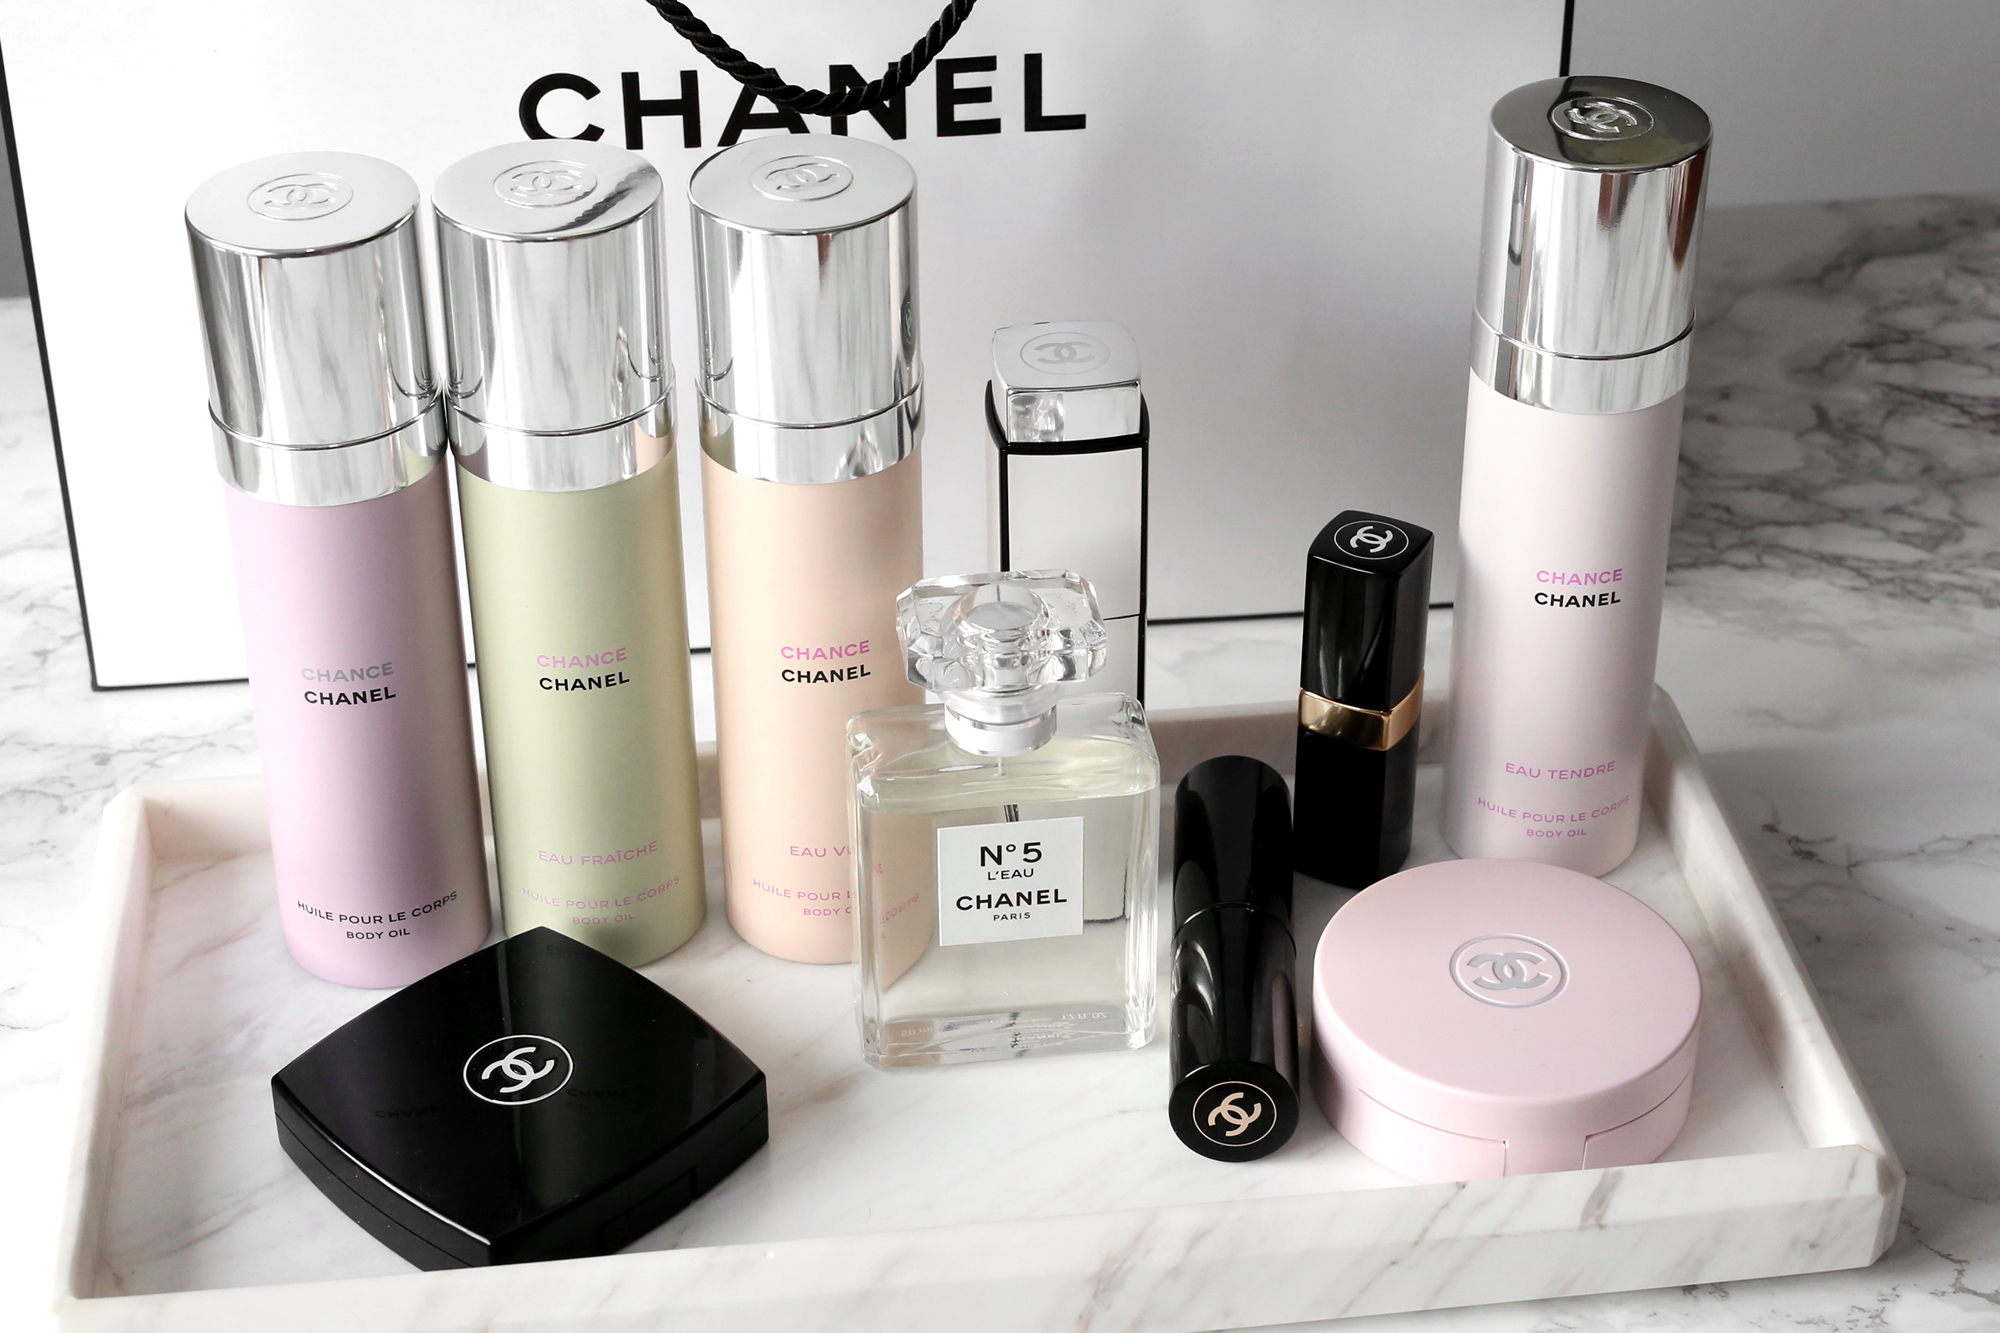 30e67dedce2 CHANEL Gives Us 3 New Ways to Experience Chance Perfume. CHANEL Chance Body  Oils ...